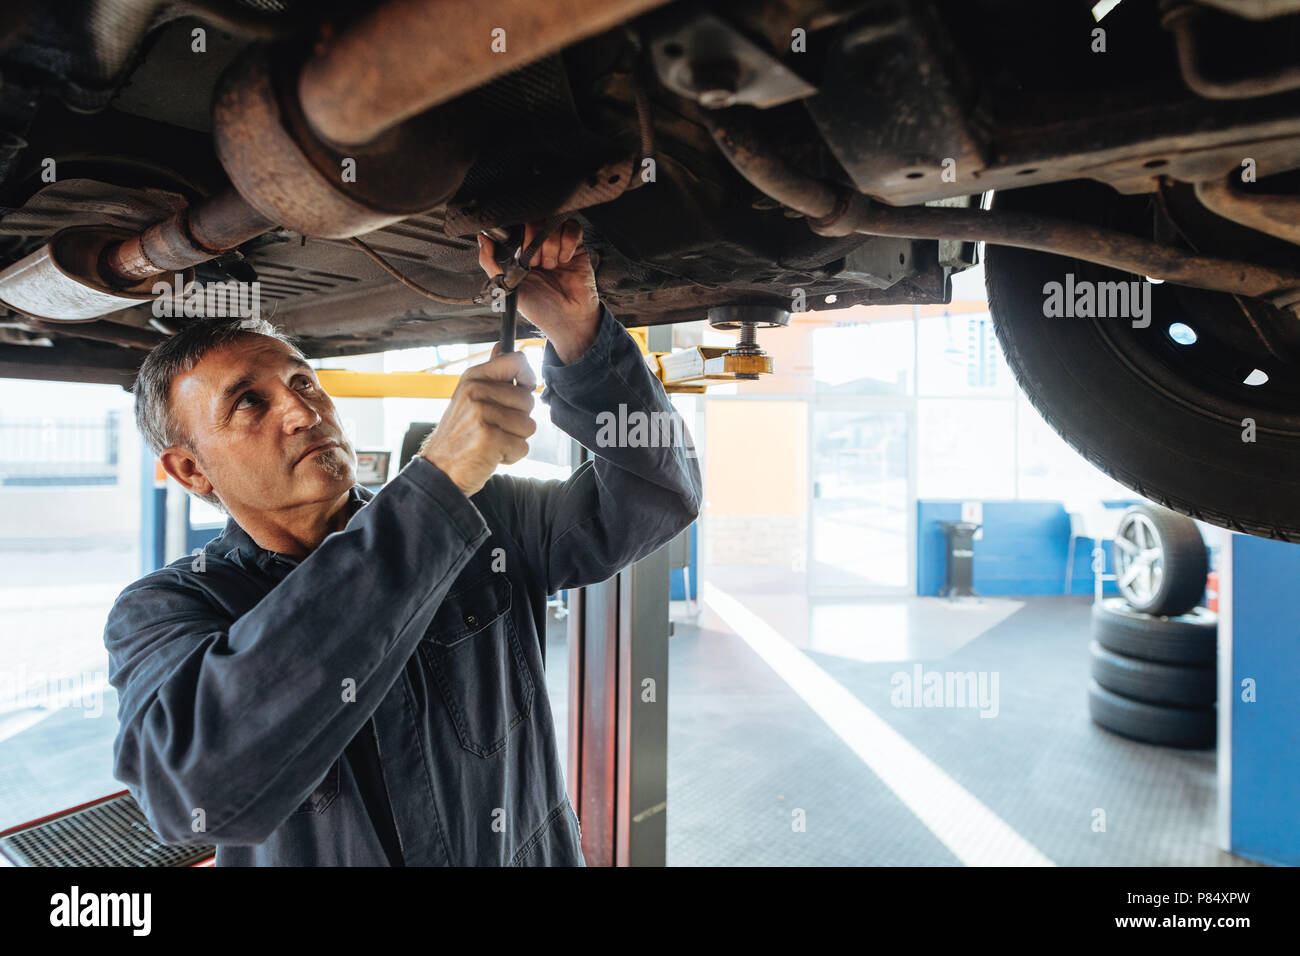 Car mechanic working under a automobile in garage. Auto mechanic repairing a vehicle in service station. - Stock Image